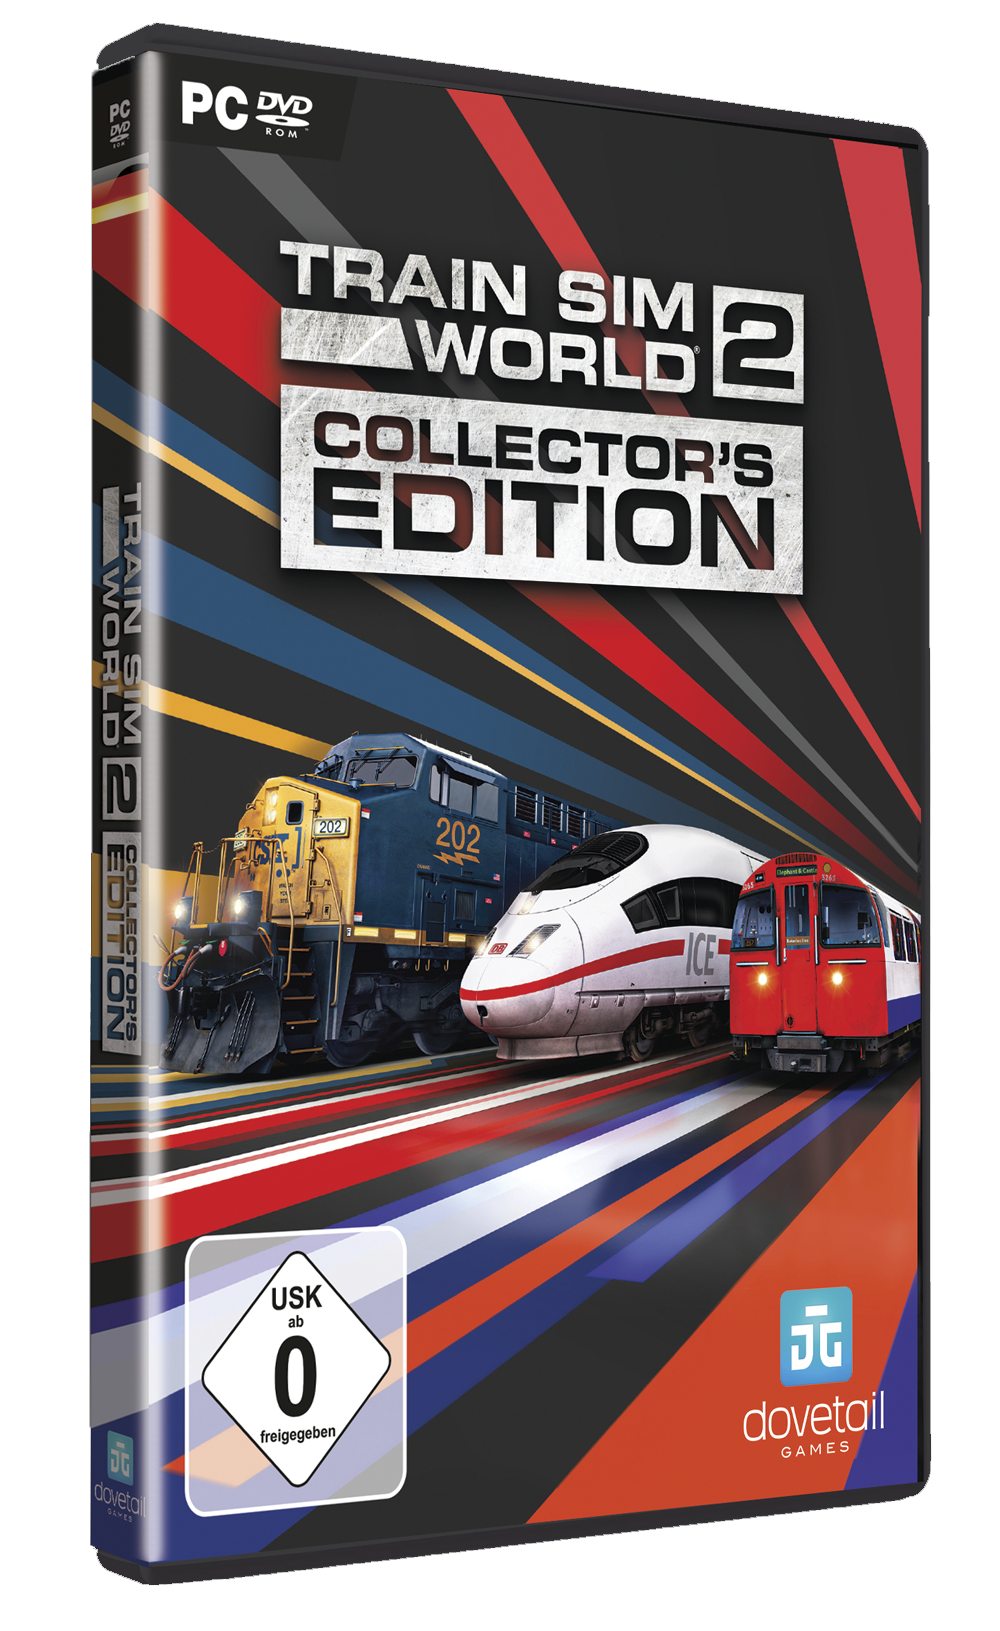 Packshot TRAIN SIM WORLD 2 - Collector's Edition